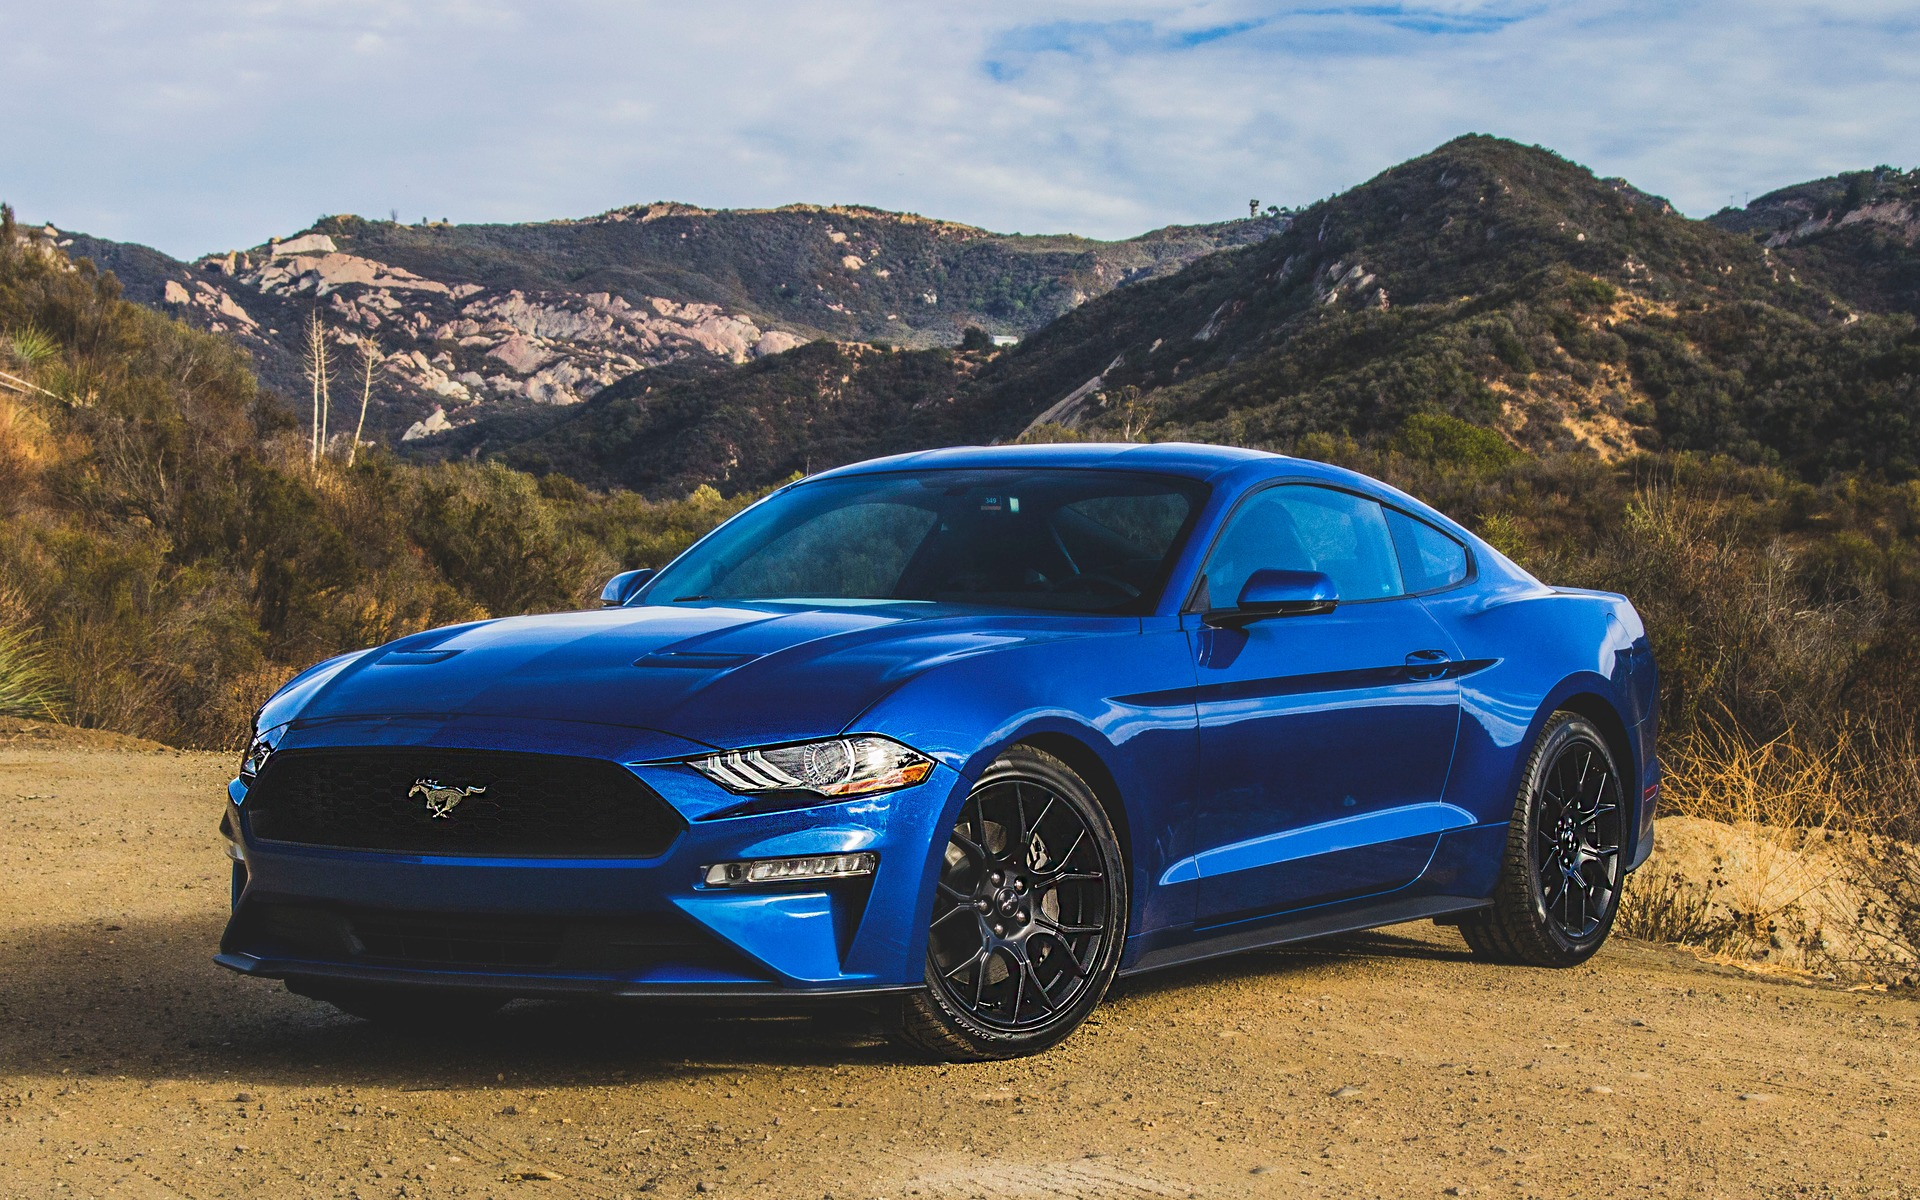 Fantastic 2018 Ford Mustang: Preparing for the Future - The Car Guide VU24